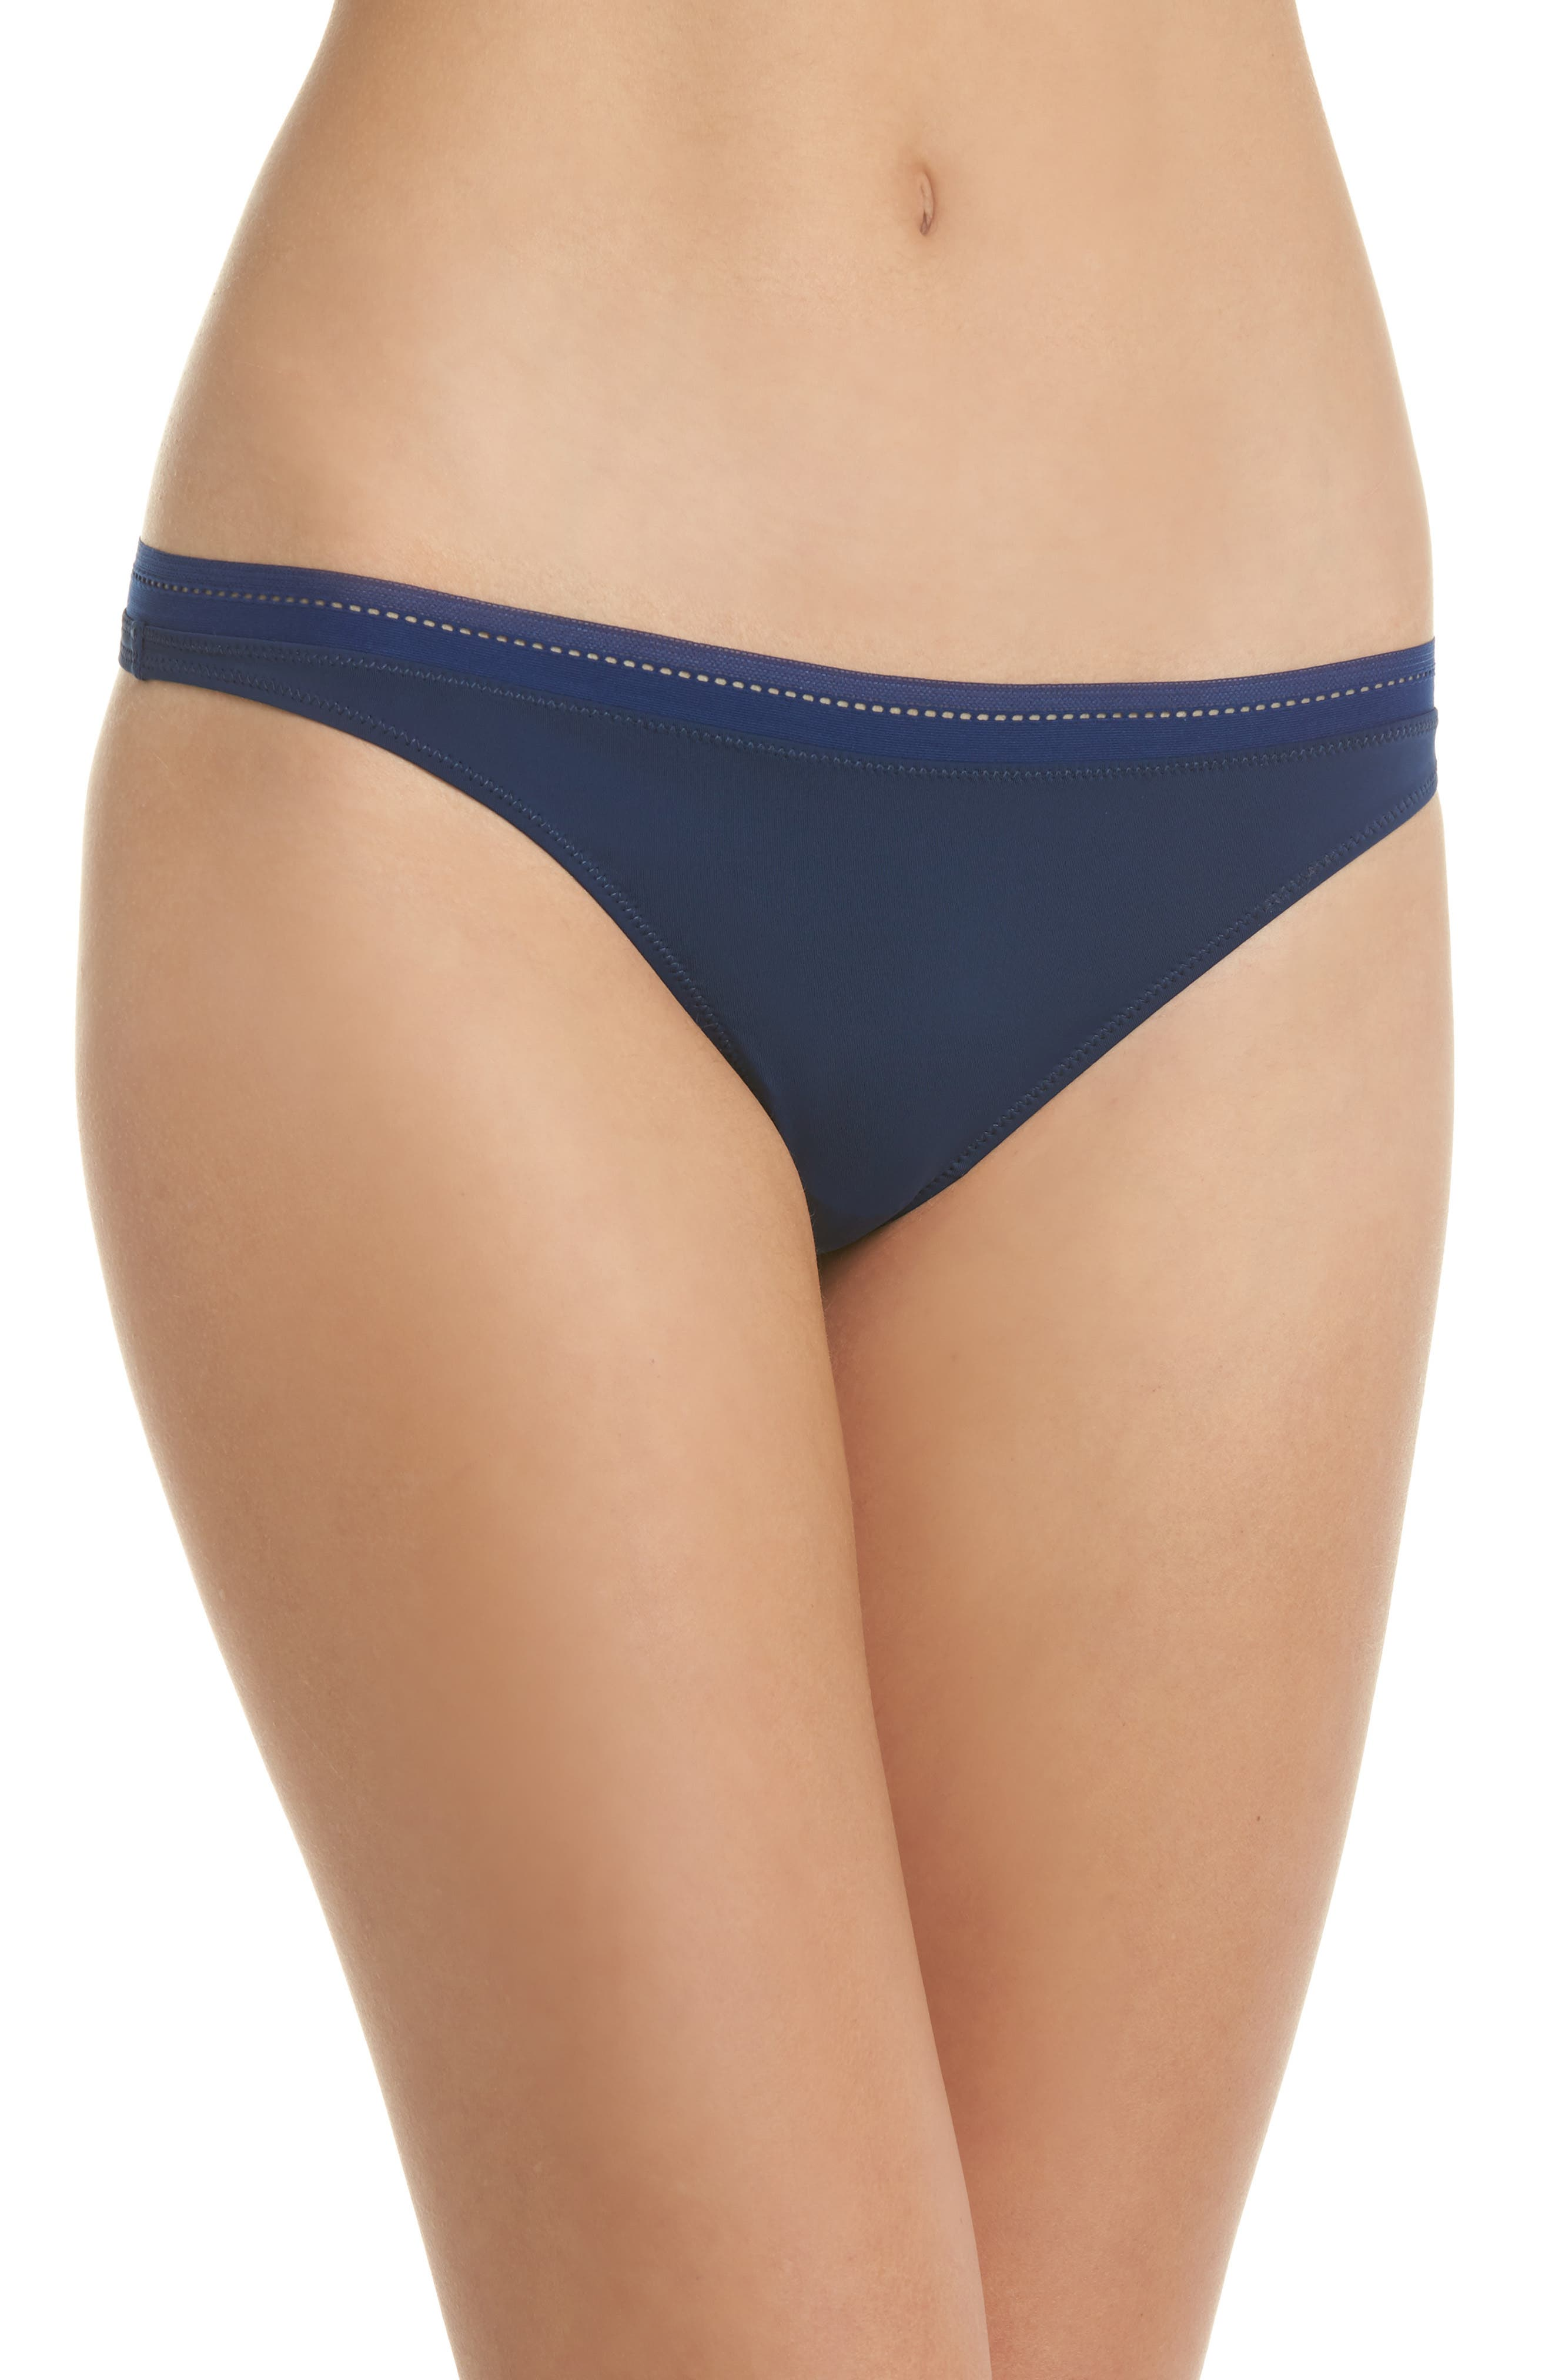 Intimately FP Truth or Dare Thong,                             Main thumbnail 5, color,